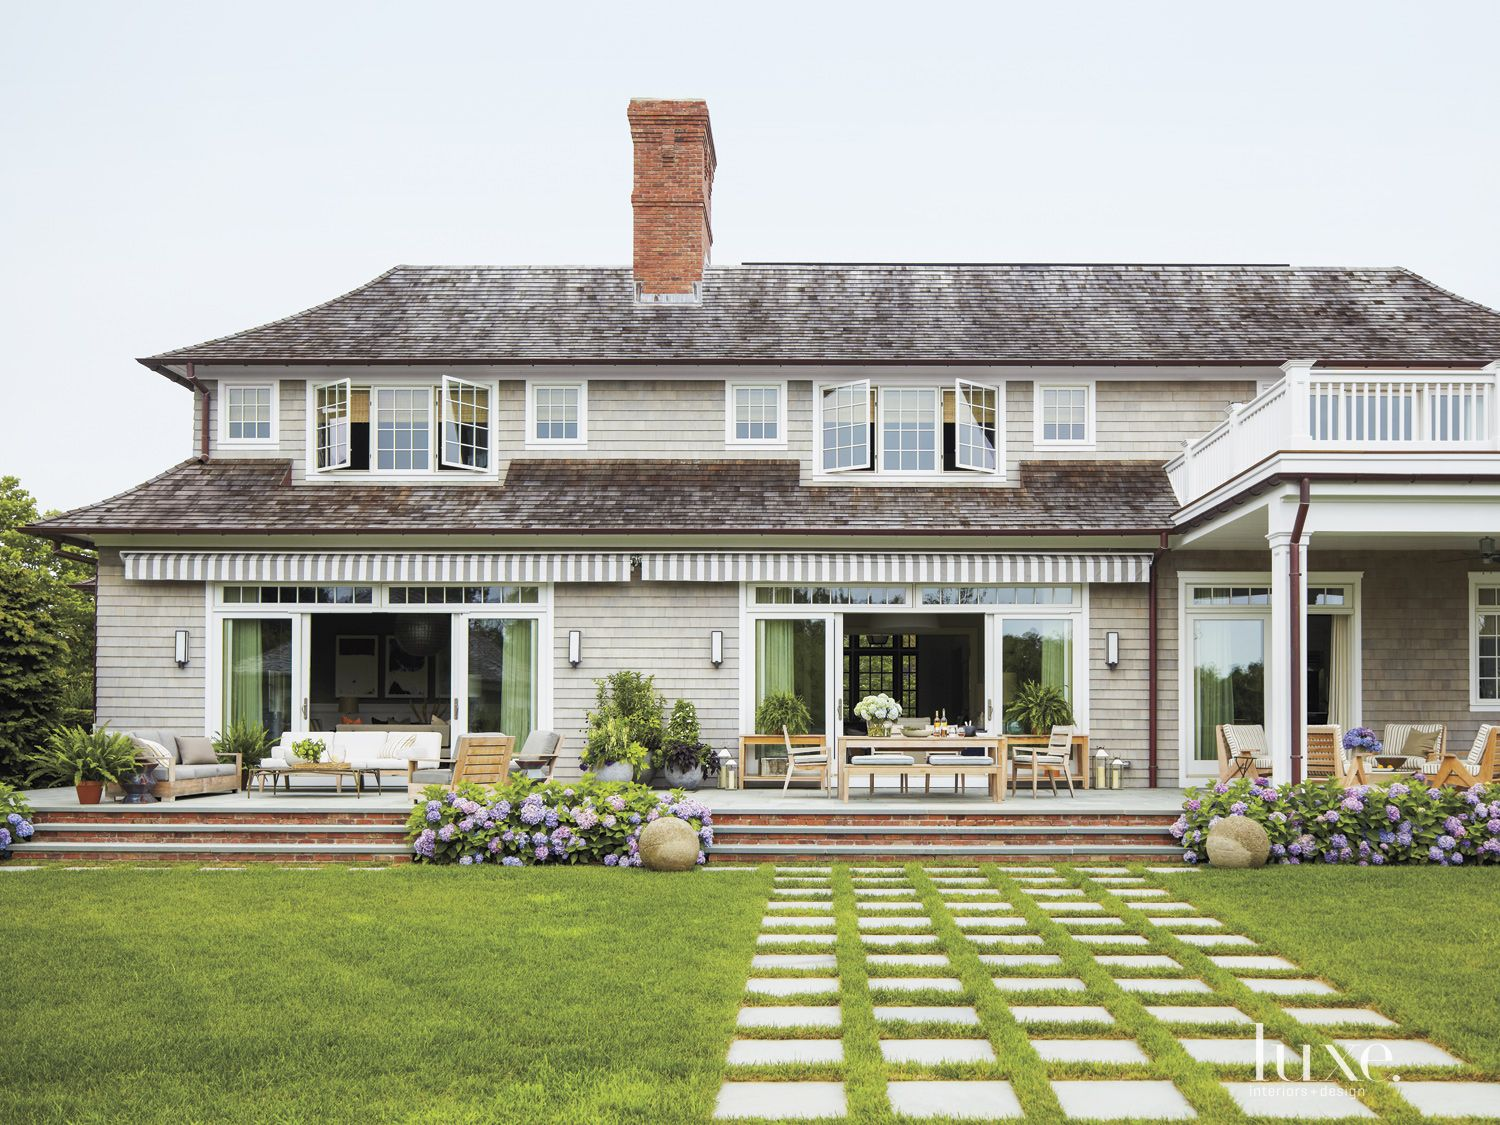 Transitional Shingle Exterior with Outdoor Seating Areas